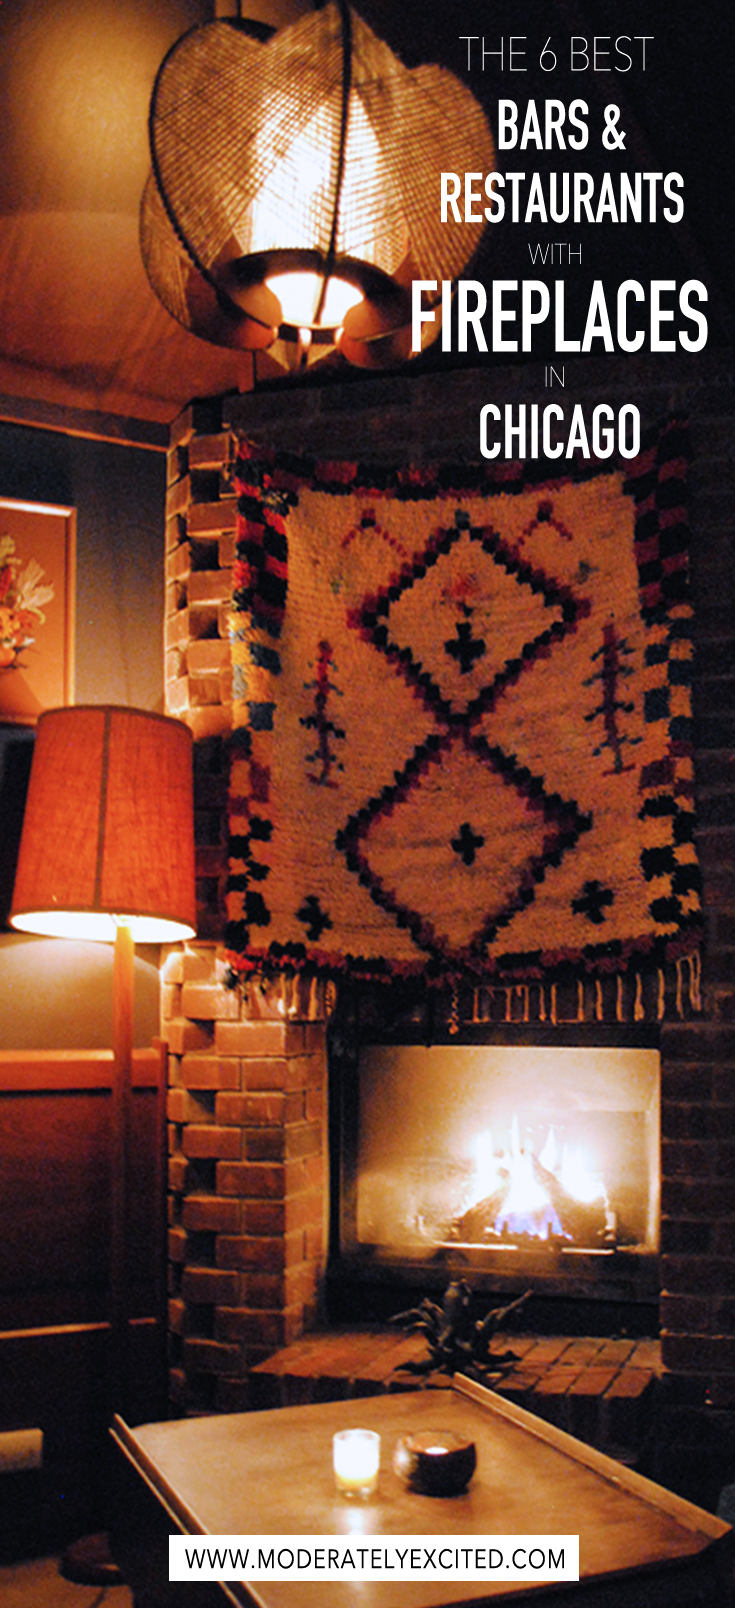 A definitive guide to the 6 best fireplaces in Chicago - the coziest bars and restaurants in the city.